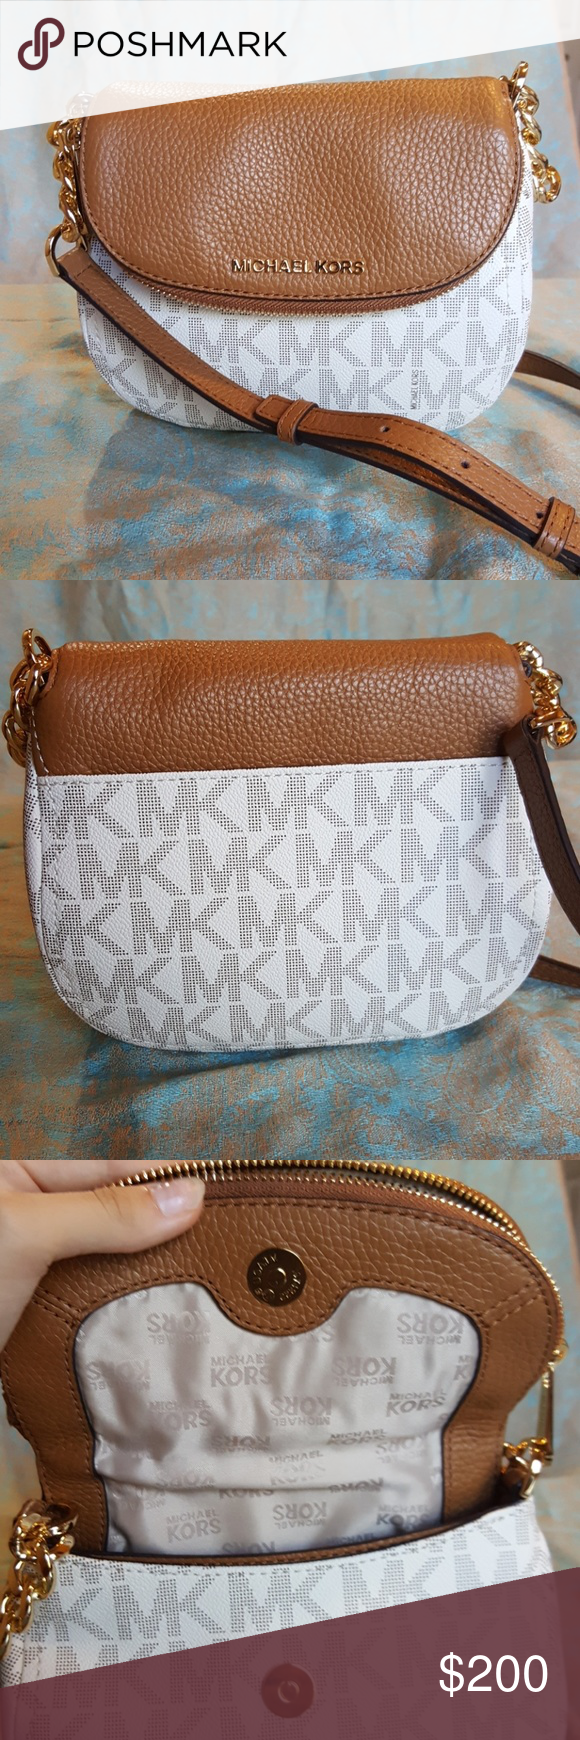 Michael kors shoulder bag Small leather crossbody with an adjustable strap and many openings for belongings Michael Kors Bags Crossbody Bags